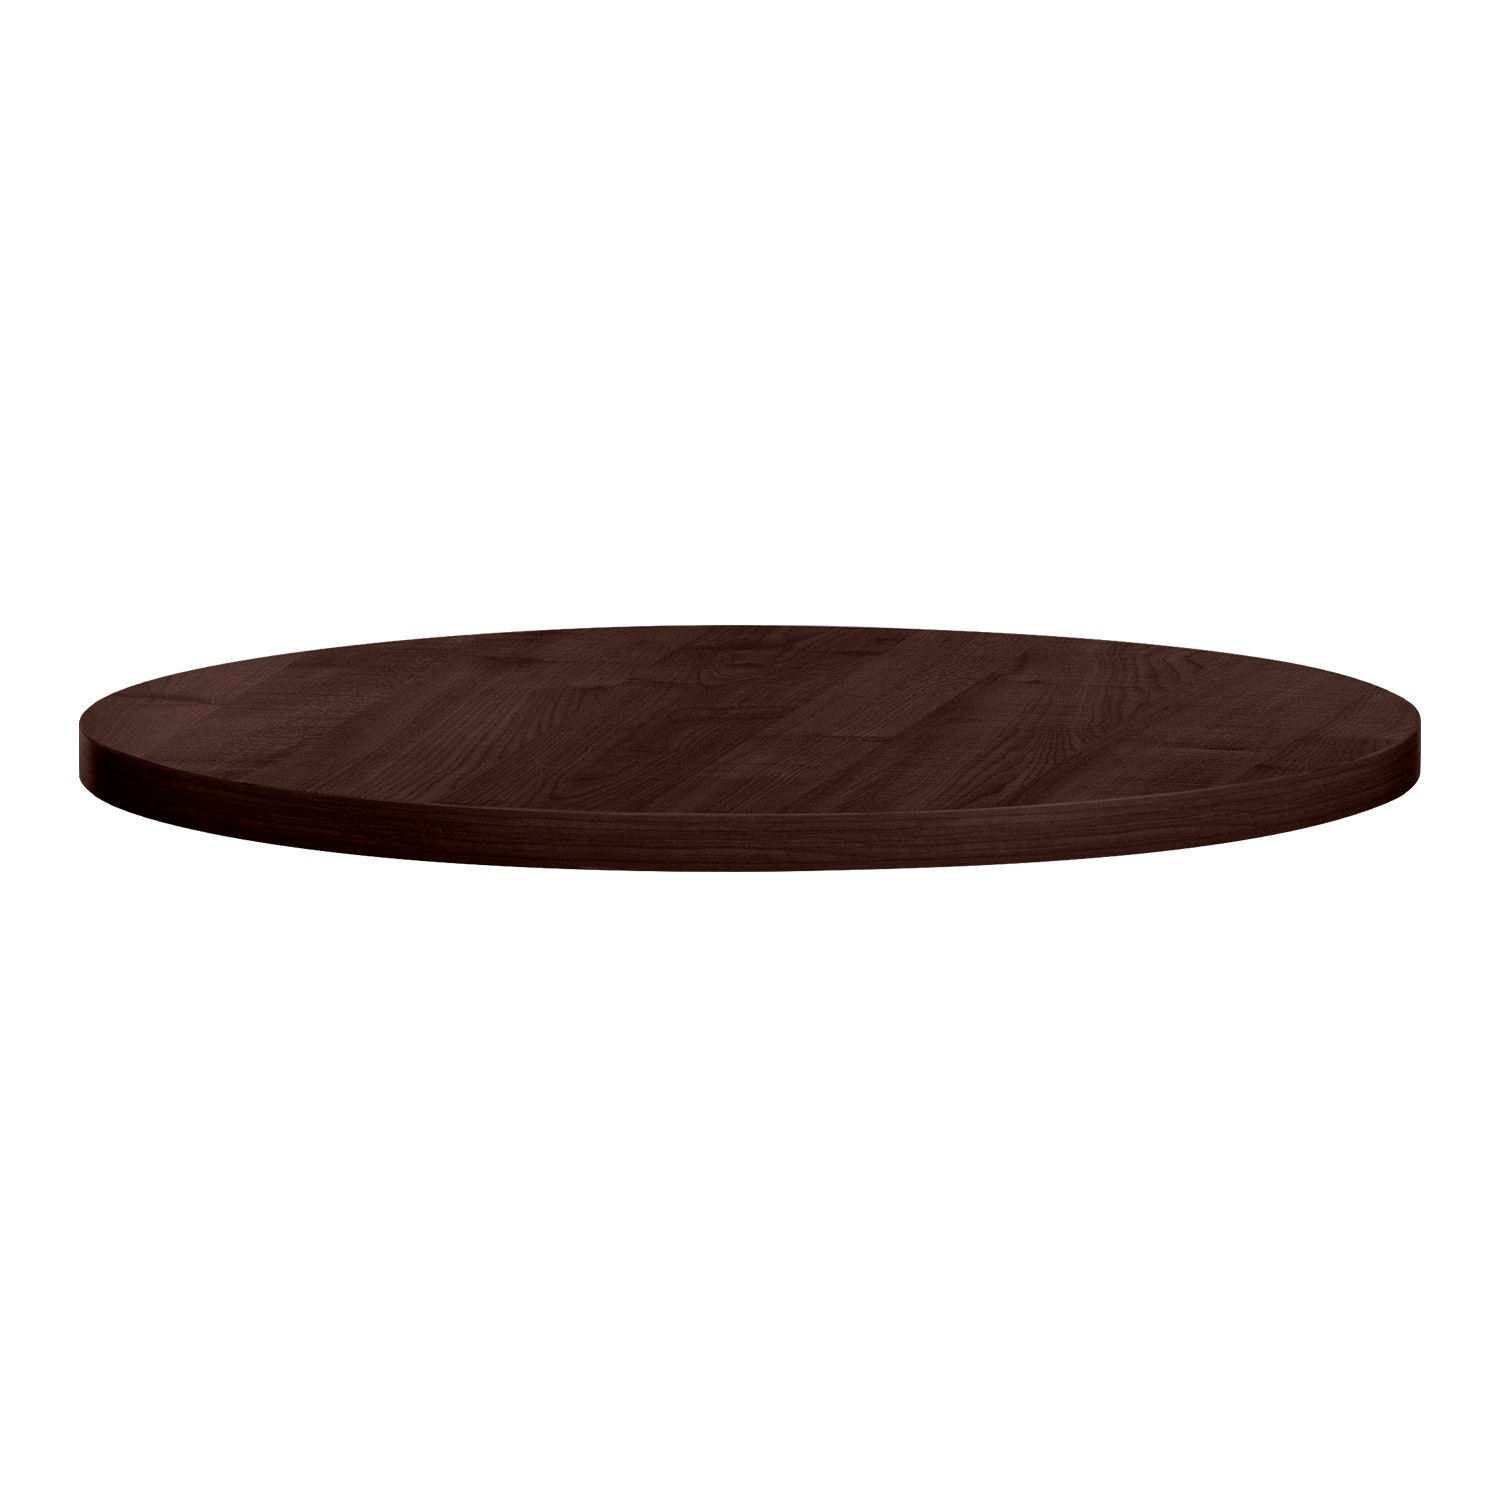 Wooden Ateh Table Top, gallery image 1